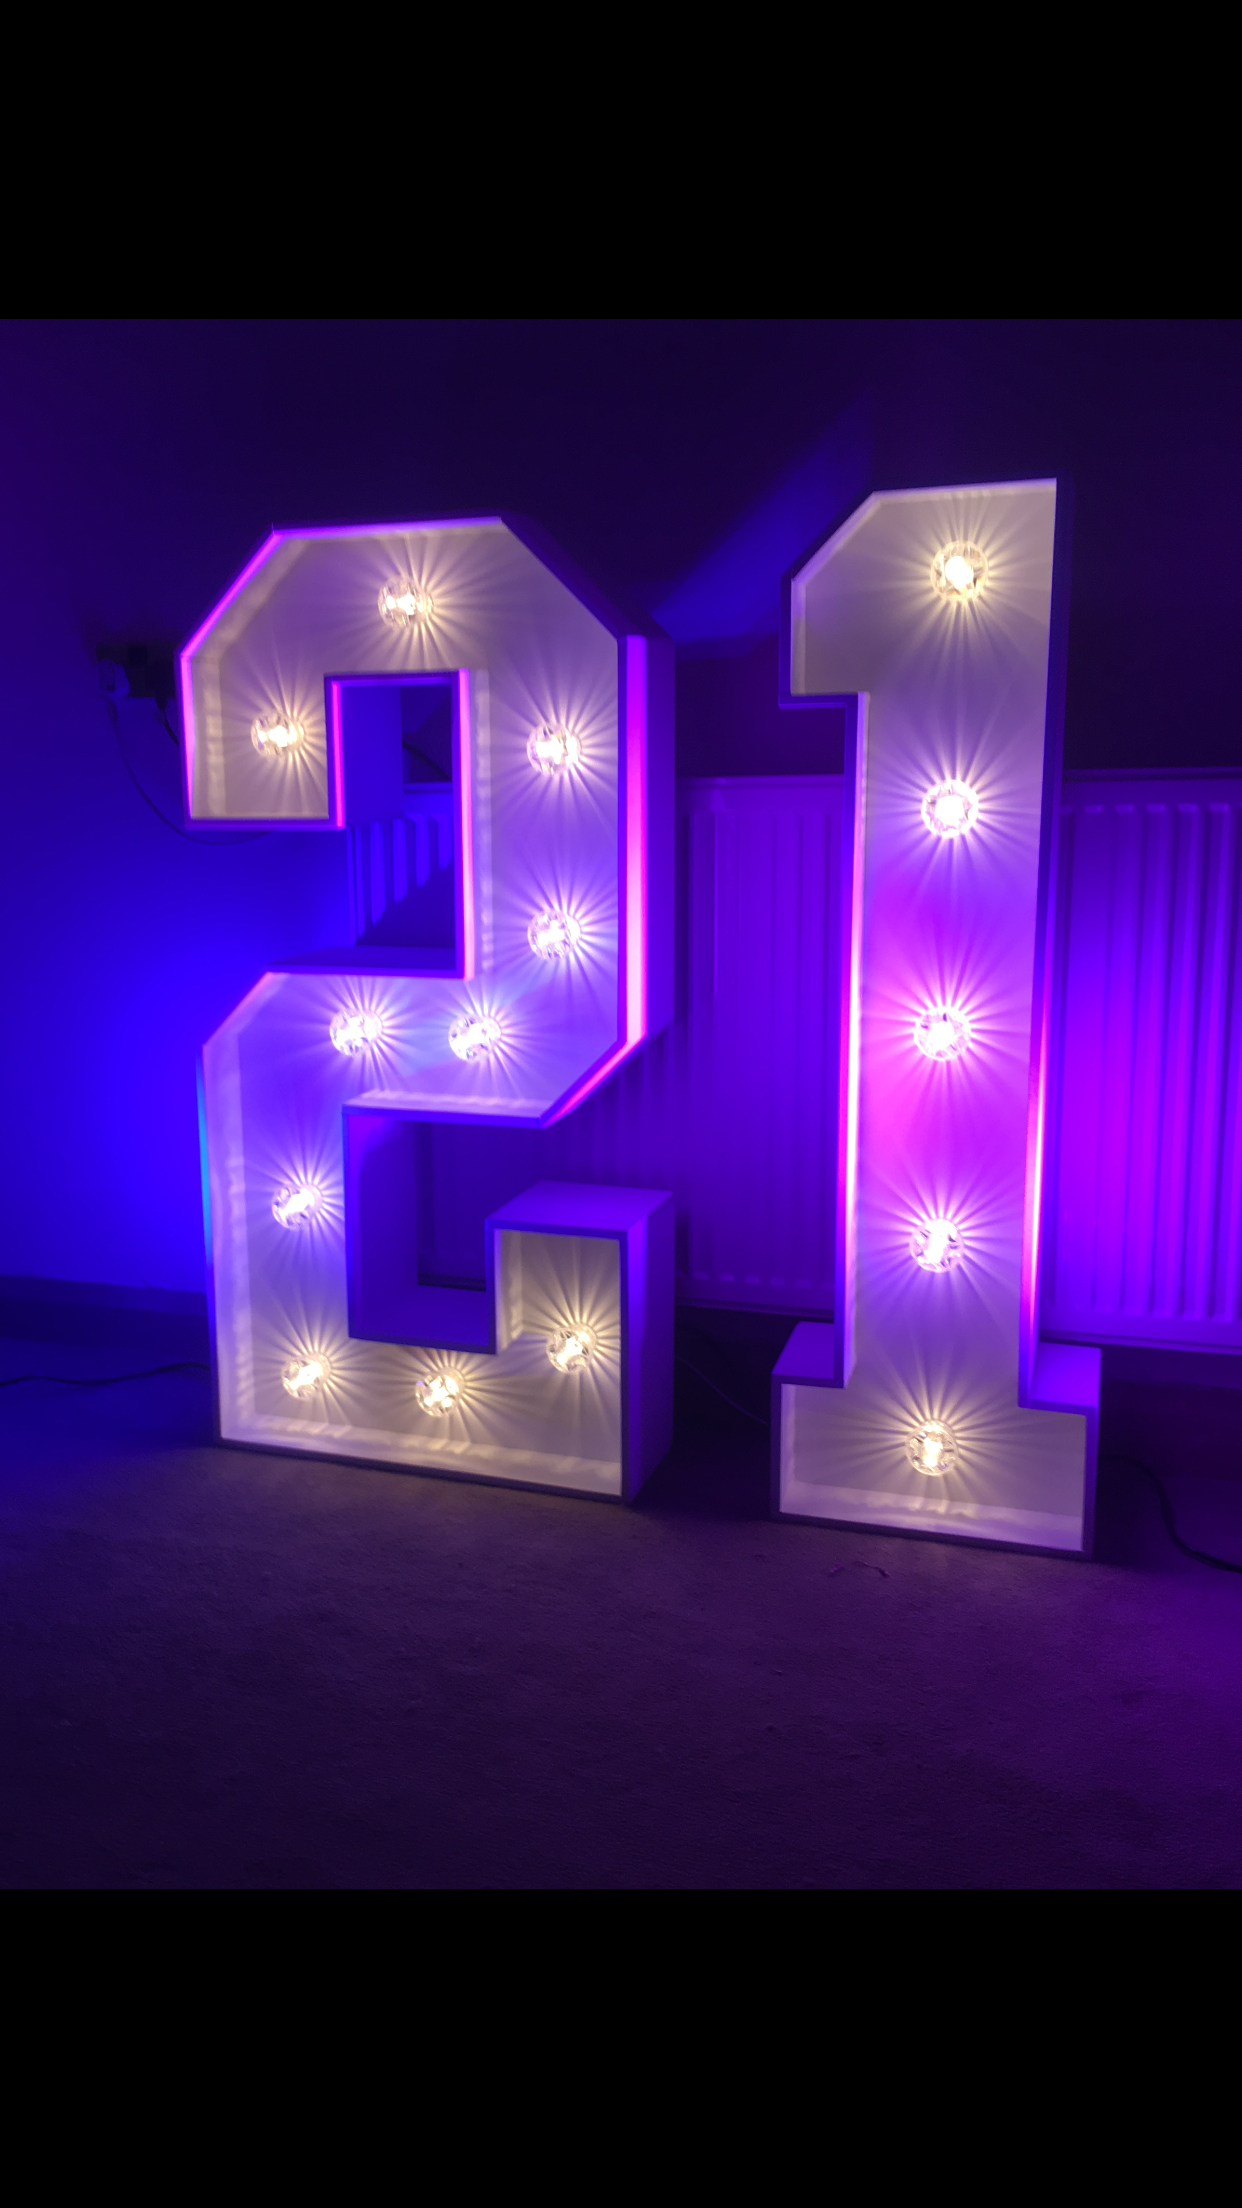 Giant Light Up Number 21 For 21st Birthday Celebrations At Gravesend Kent 16th Birthday Decorations 21st Birthday Decorations Birthday Venues